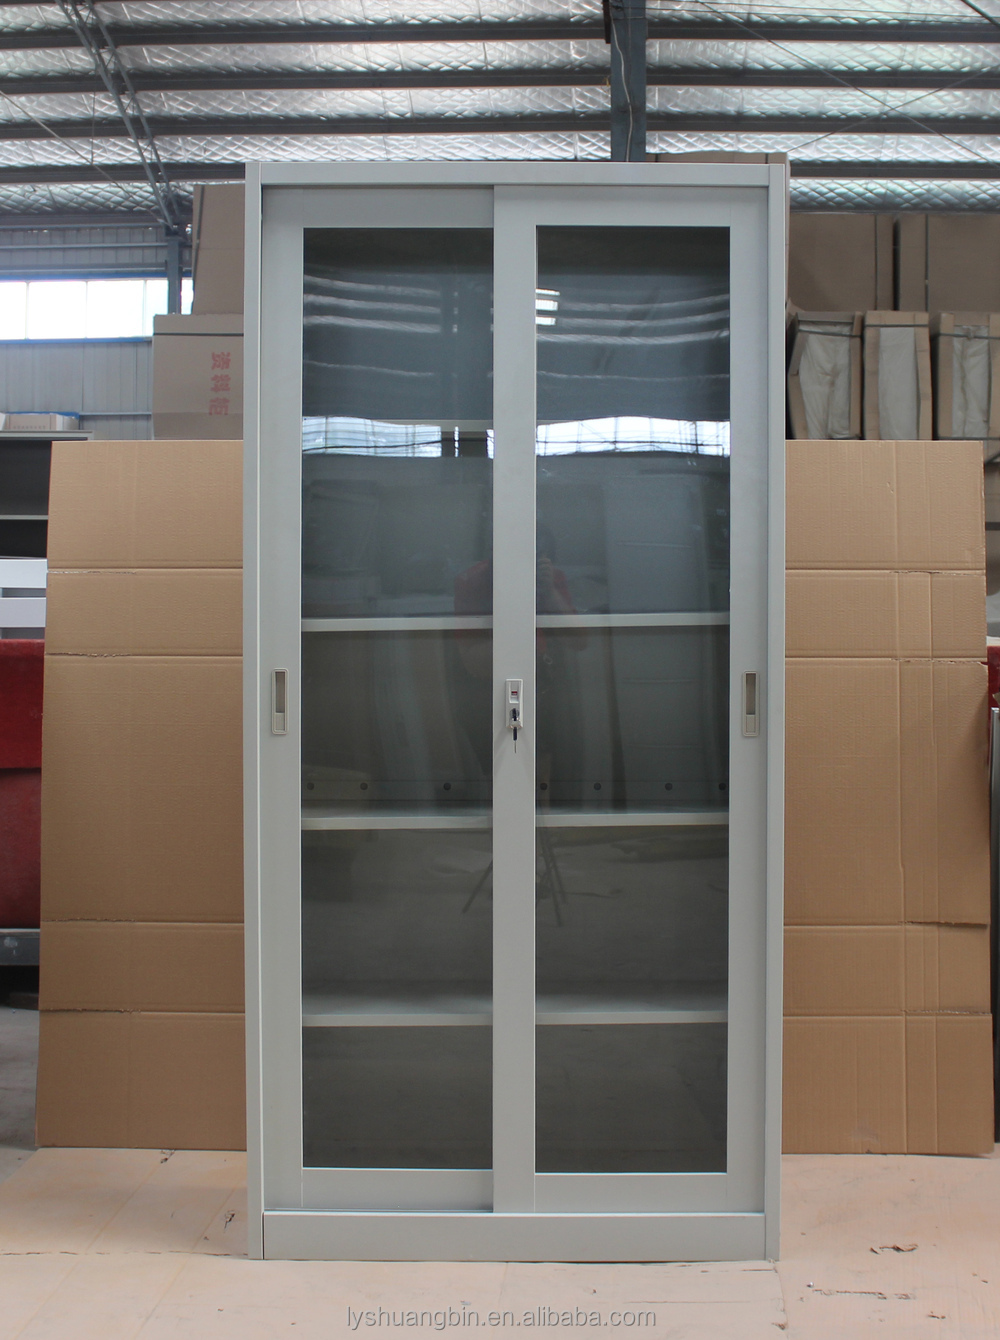 Storage Cabinet Sliding Doors Full Height High Gloss Factory Price Glass Sliding Door Steel